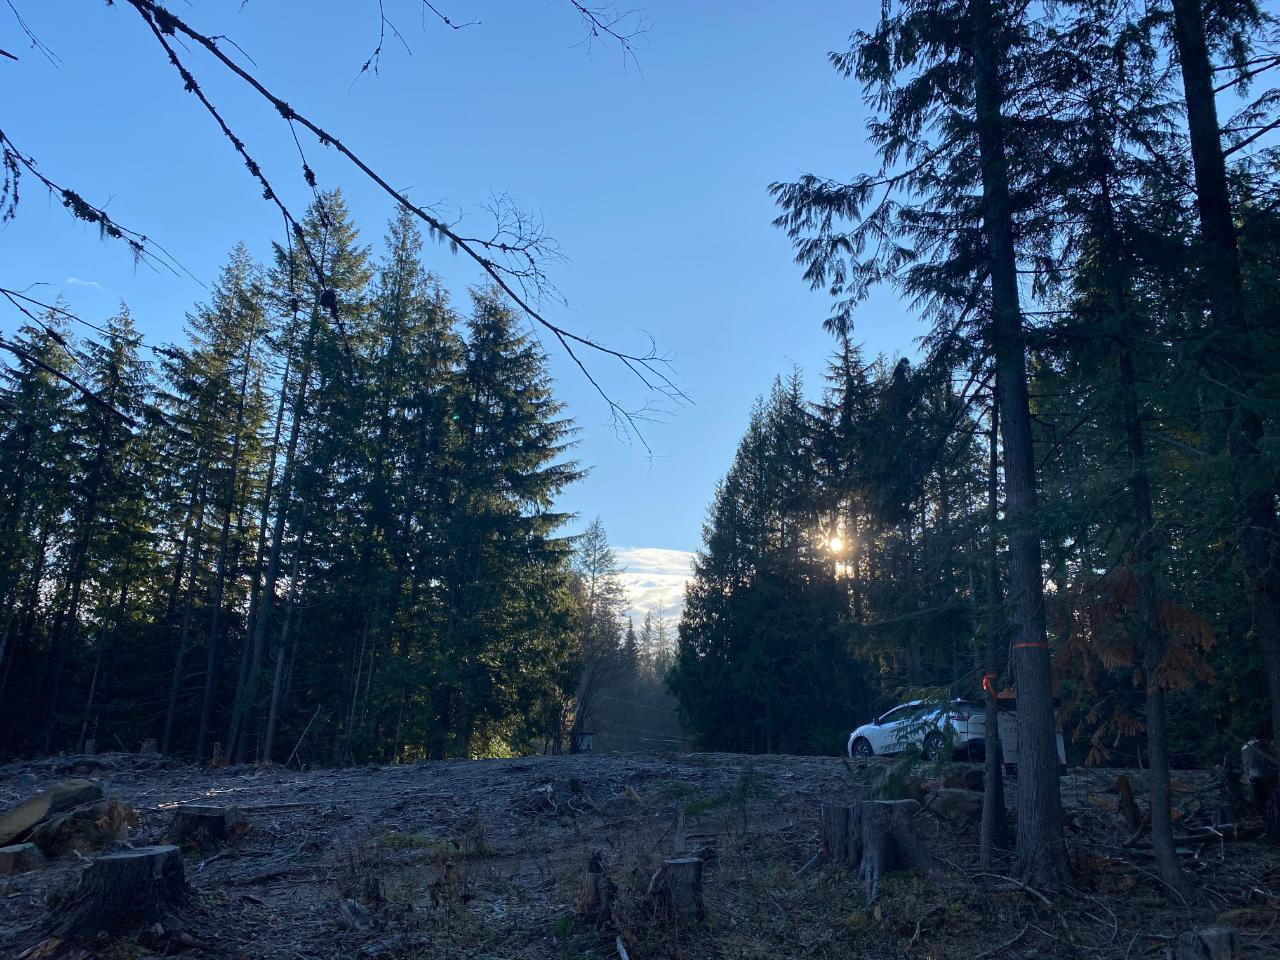 Main Photo: Lot 1 RED MOUNTAIN ROAD in Rossland: Vacant Land for sale : MLS®# 2455880